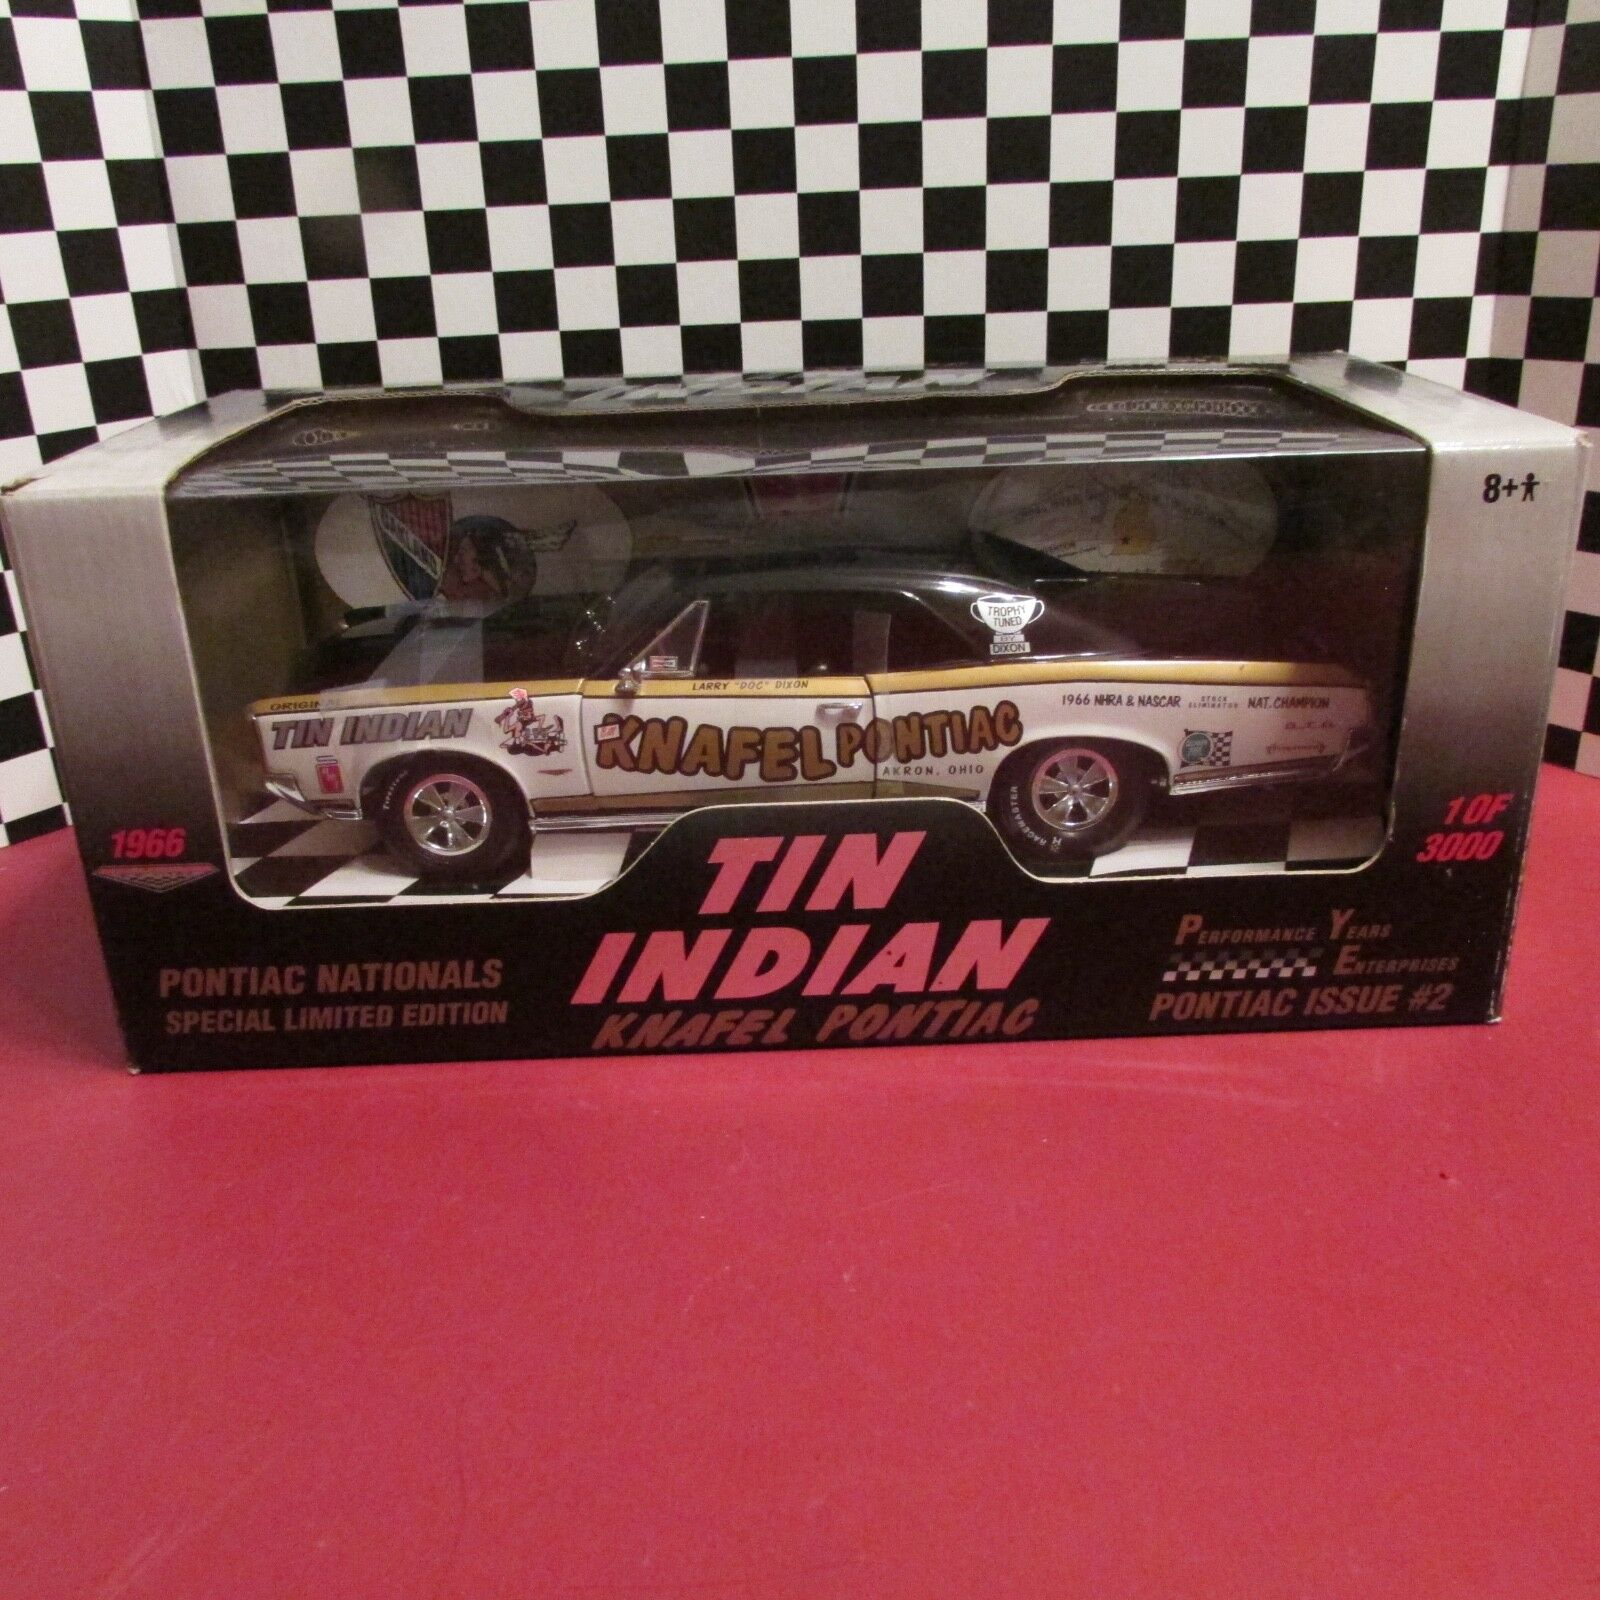 ERTL, Performance années Enterprises, 1966 Pontiac GTO,  TIN INDIAN  1 18 sc. DIECAST